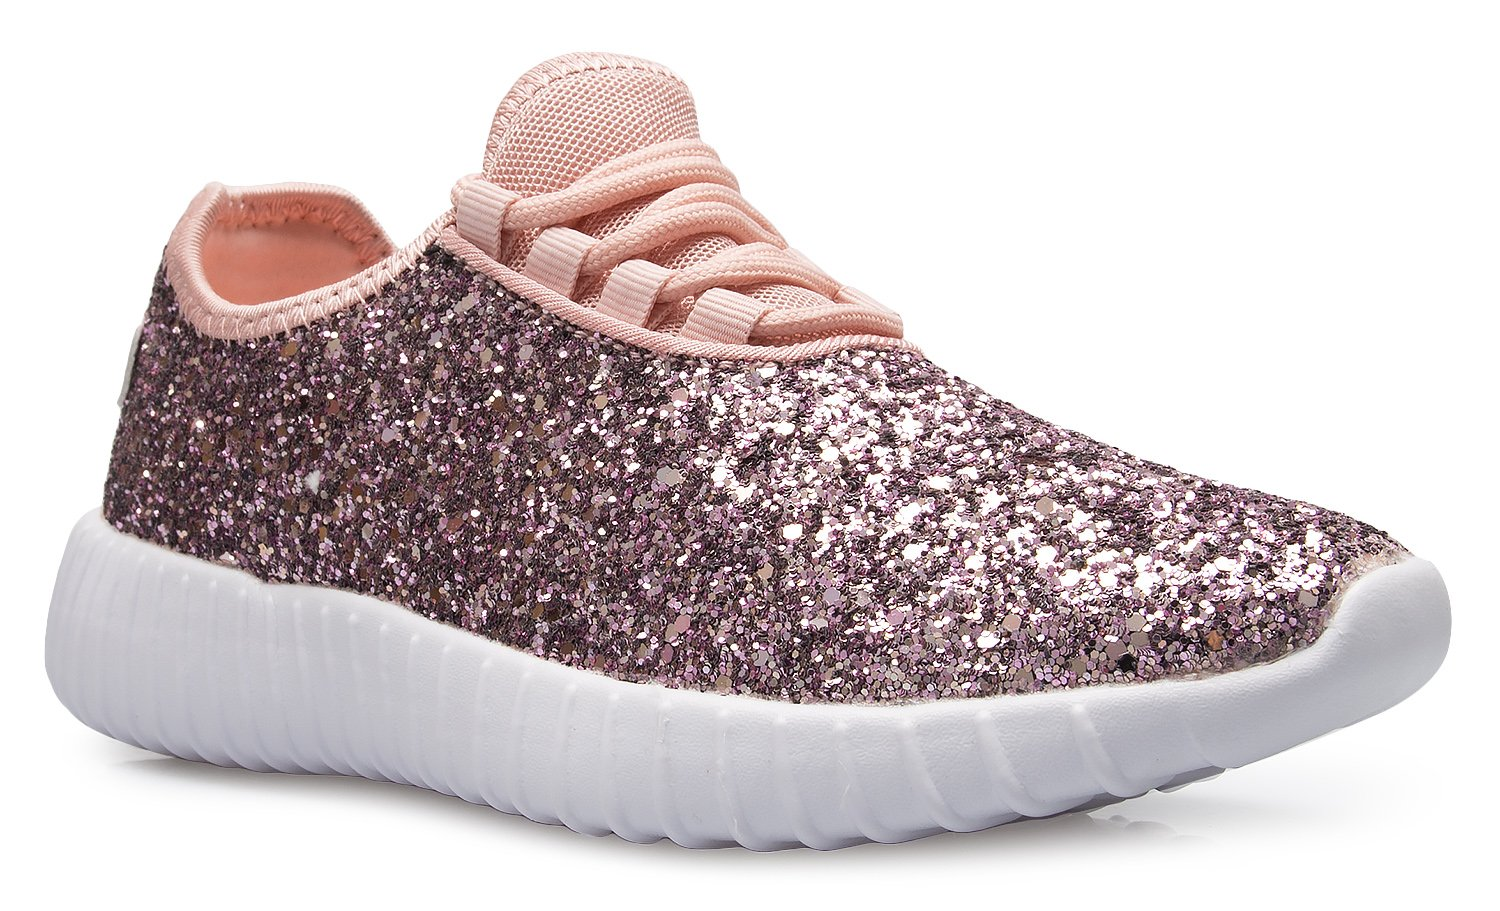 OLIVIA K Womens Easy On Casual Fashion Sparkly Glitter Sneakers - Comfort, Lightweight